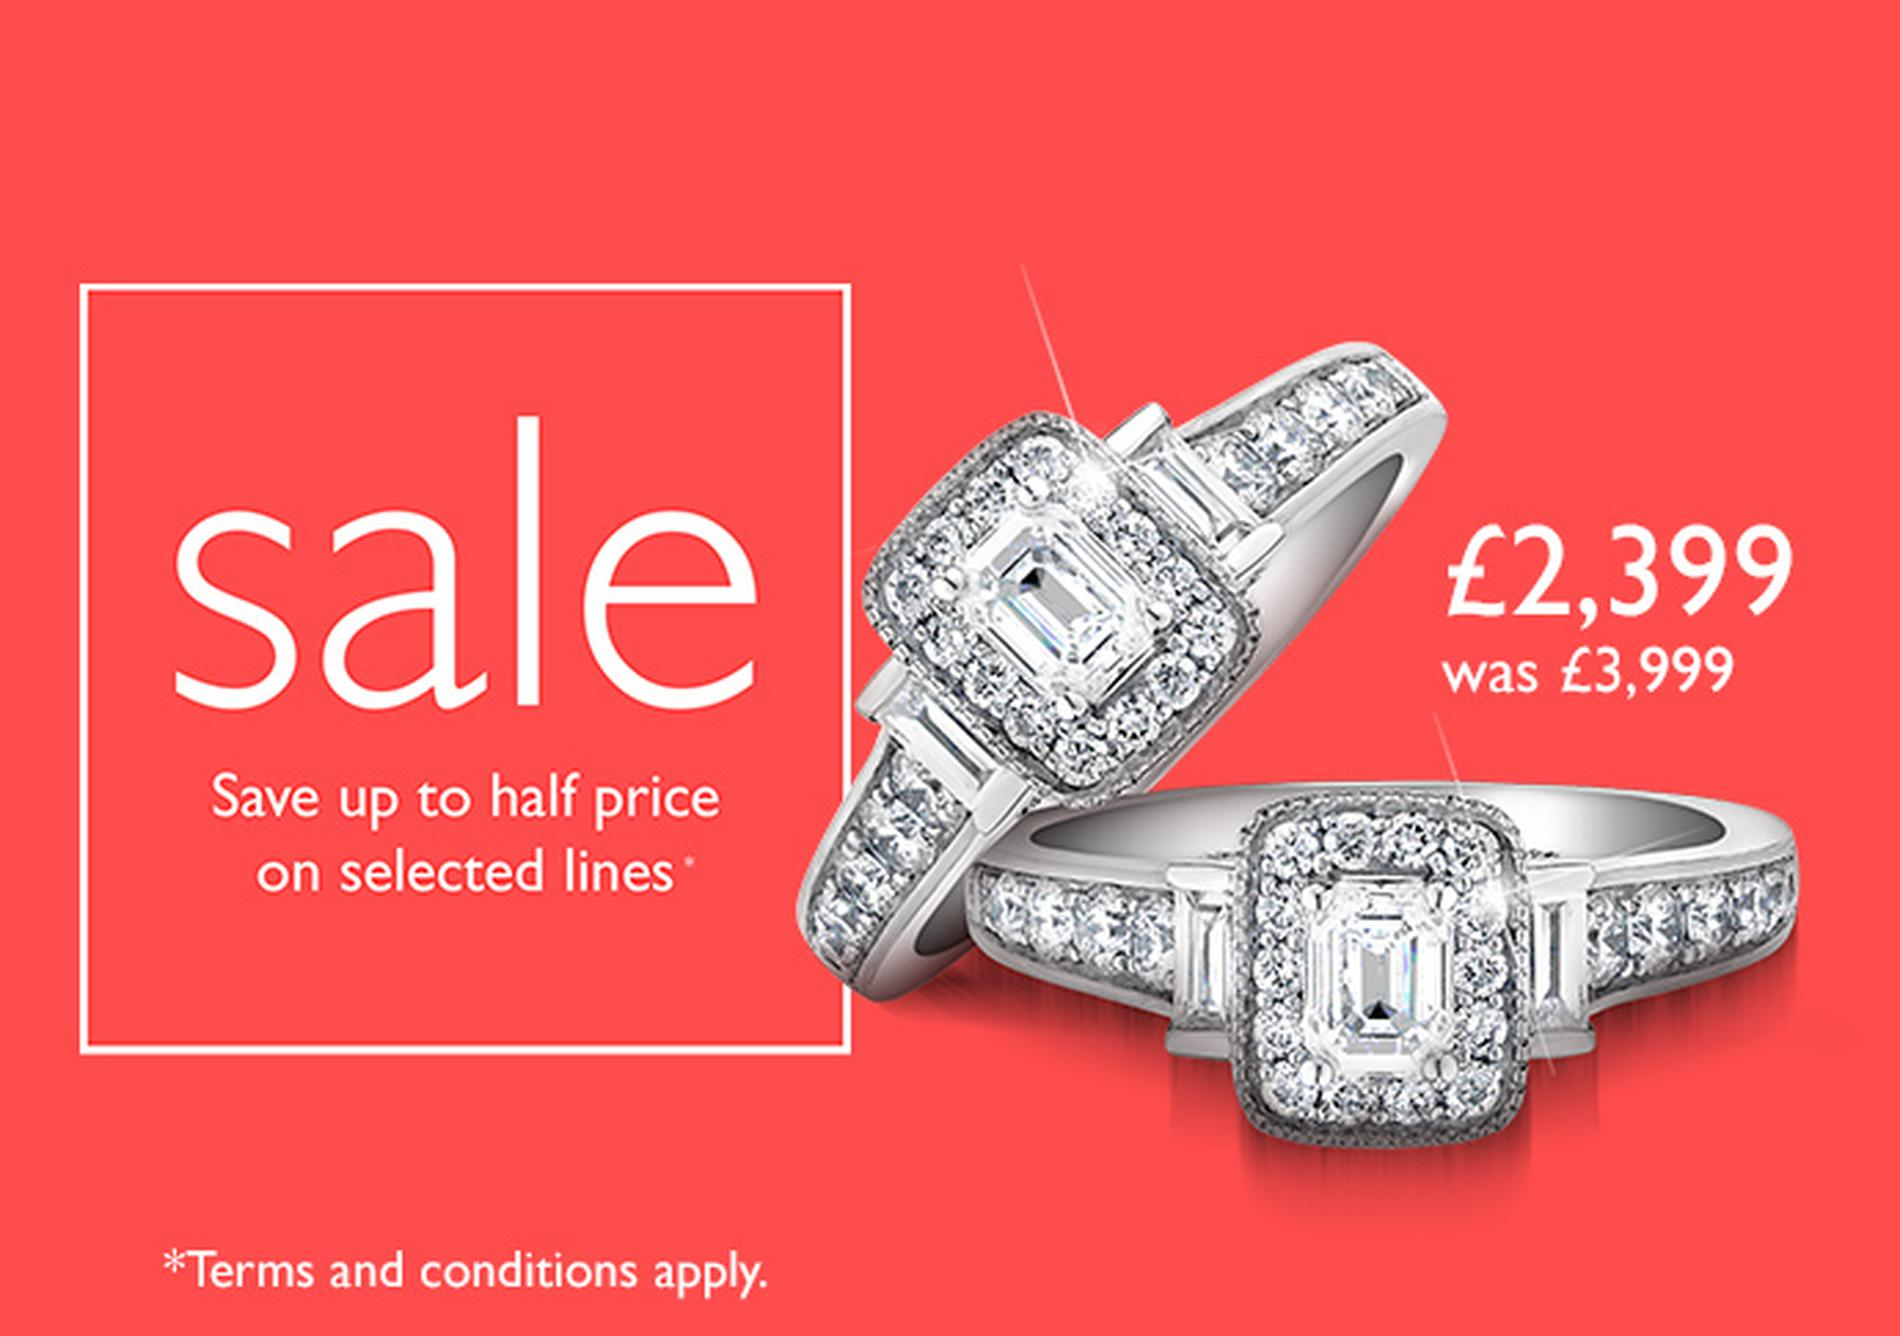 Save up to half price of selected items